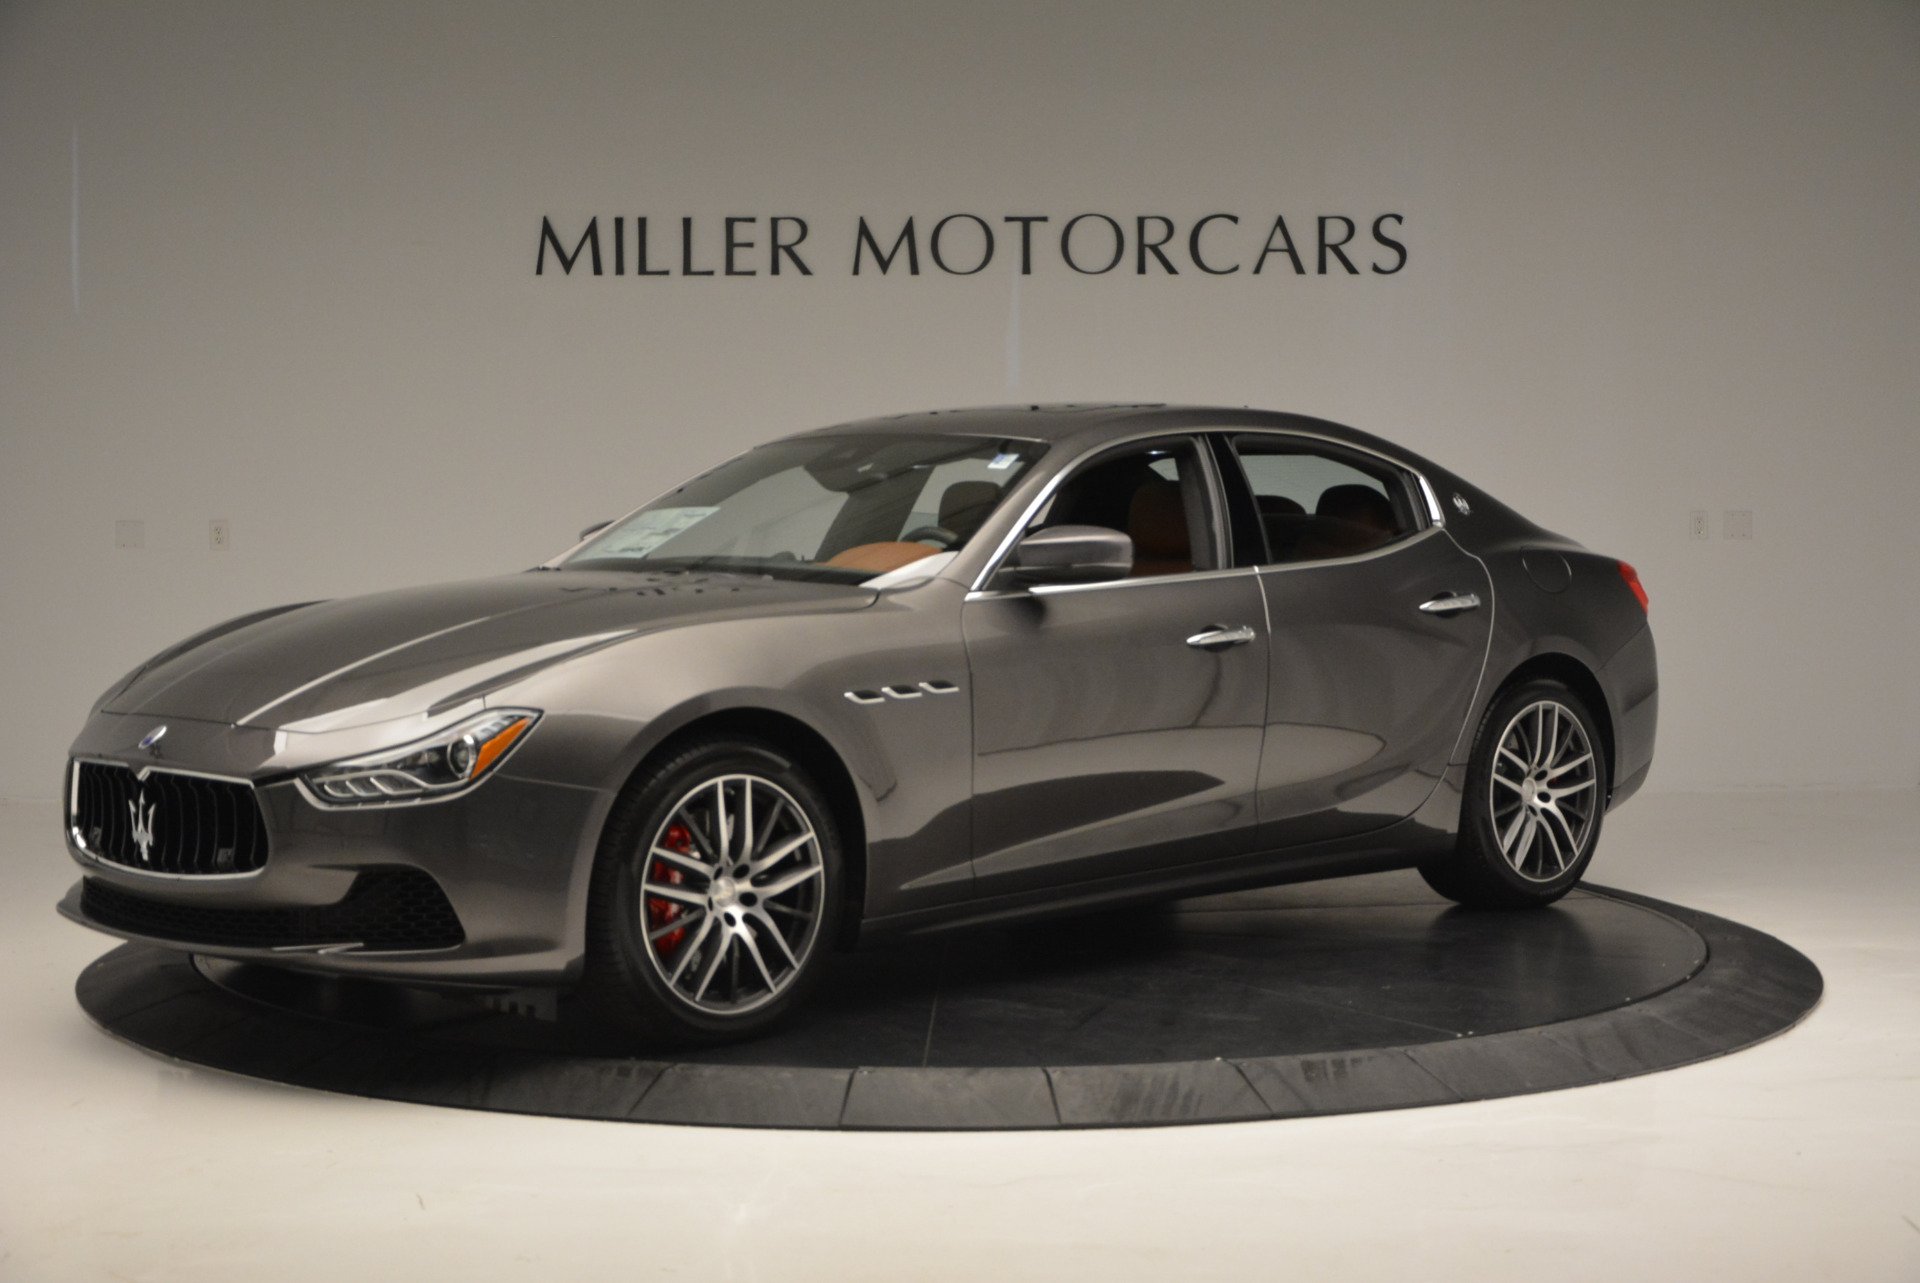 New 2017 Maserati Ghibli S Q4 For Sale In Greenwich, CT 573_p2